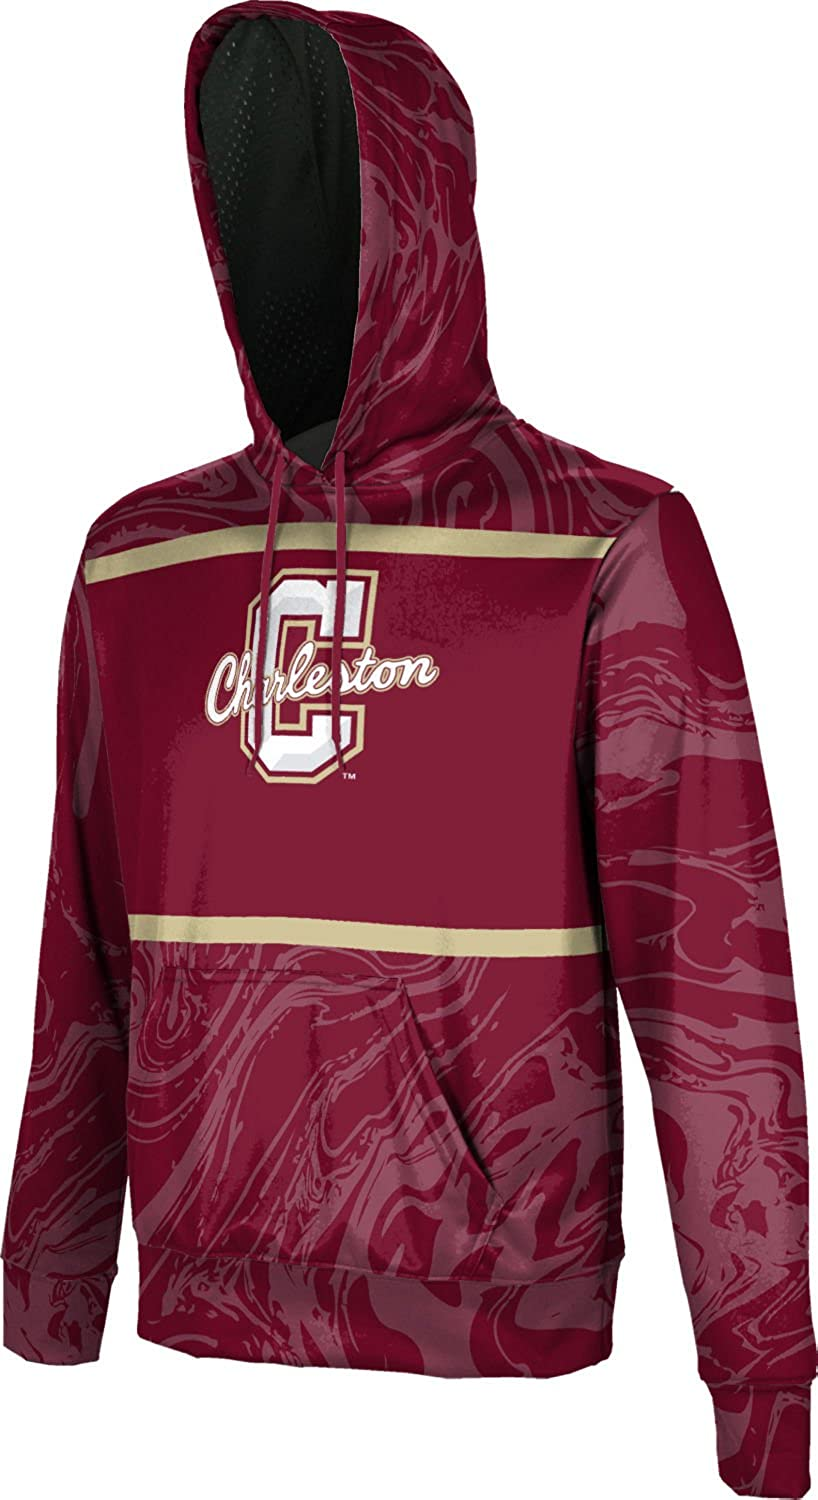 ProSphere College of Charleston University Boys Hoodie Sweatshirt Ripple